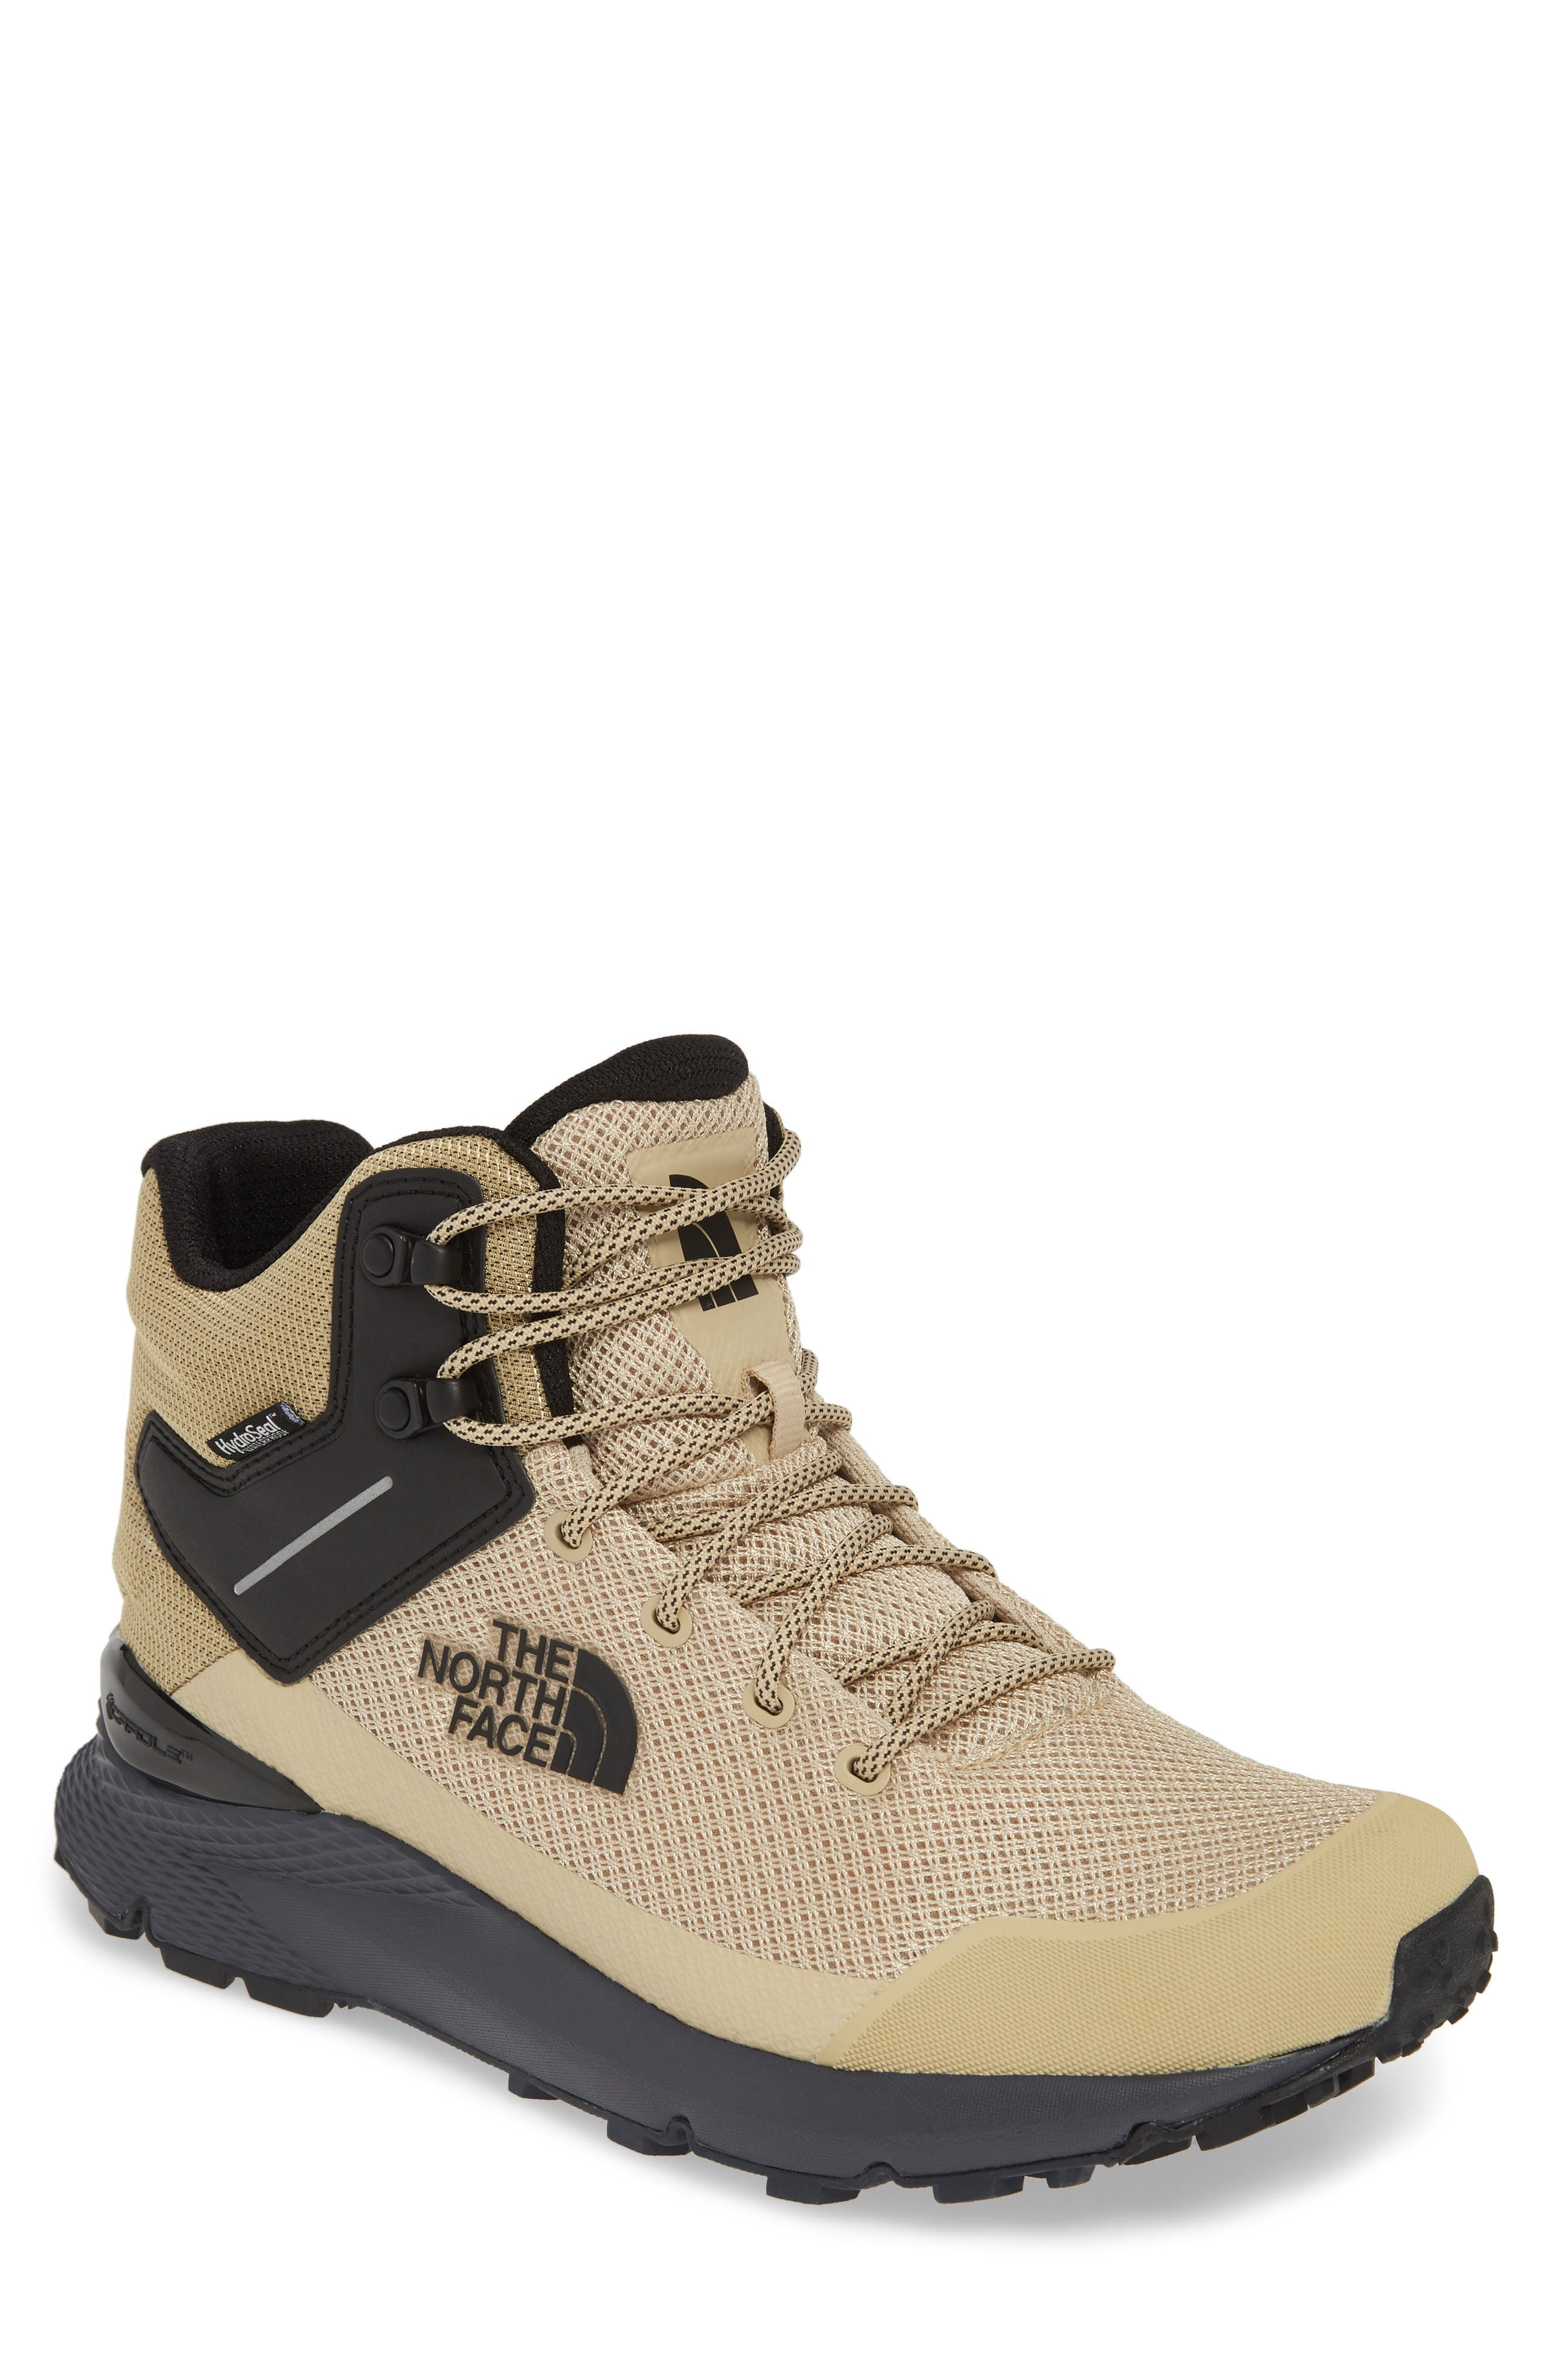 The North Face Val Mid Waterproof Hiking Boot, Beige